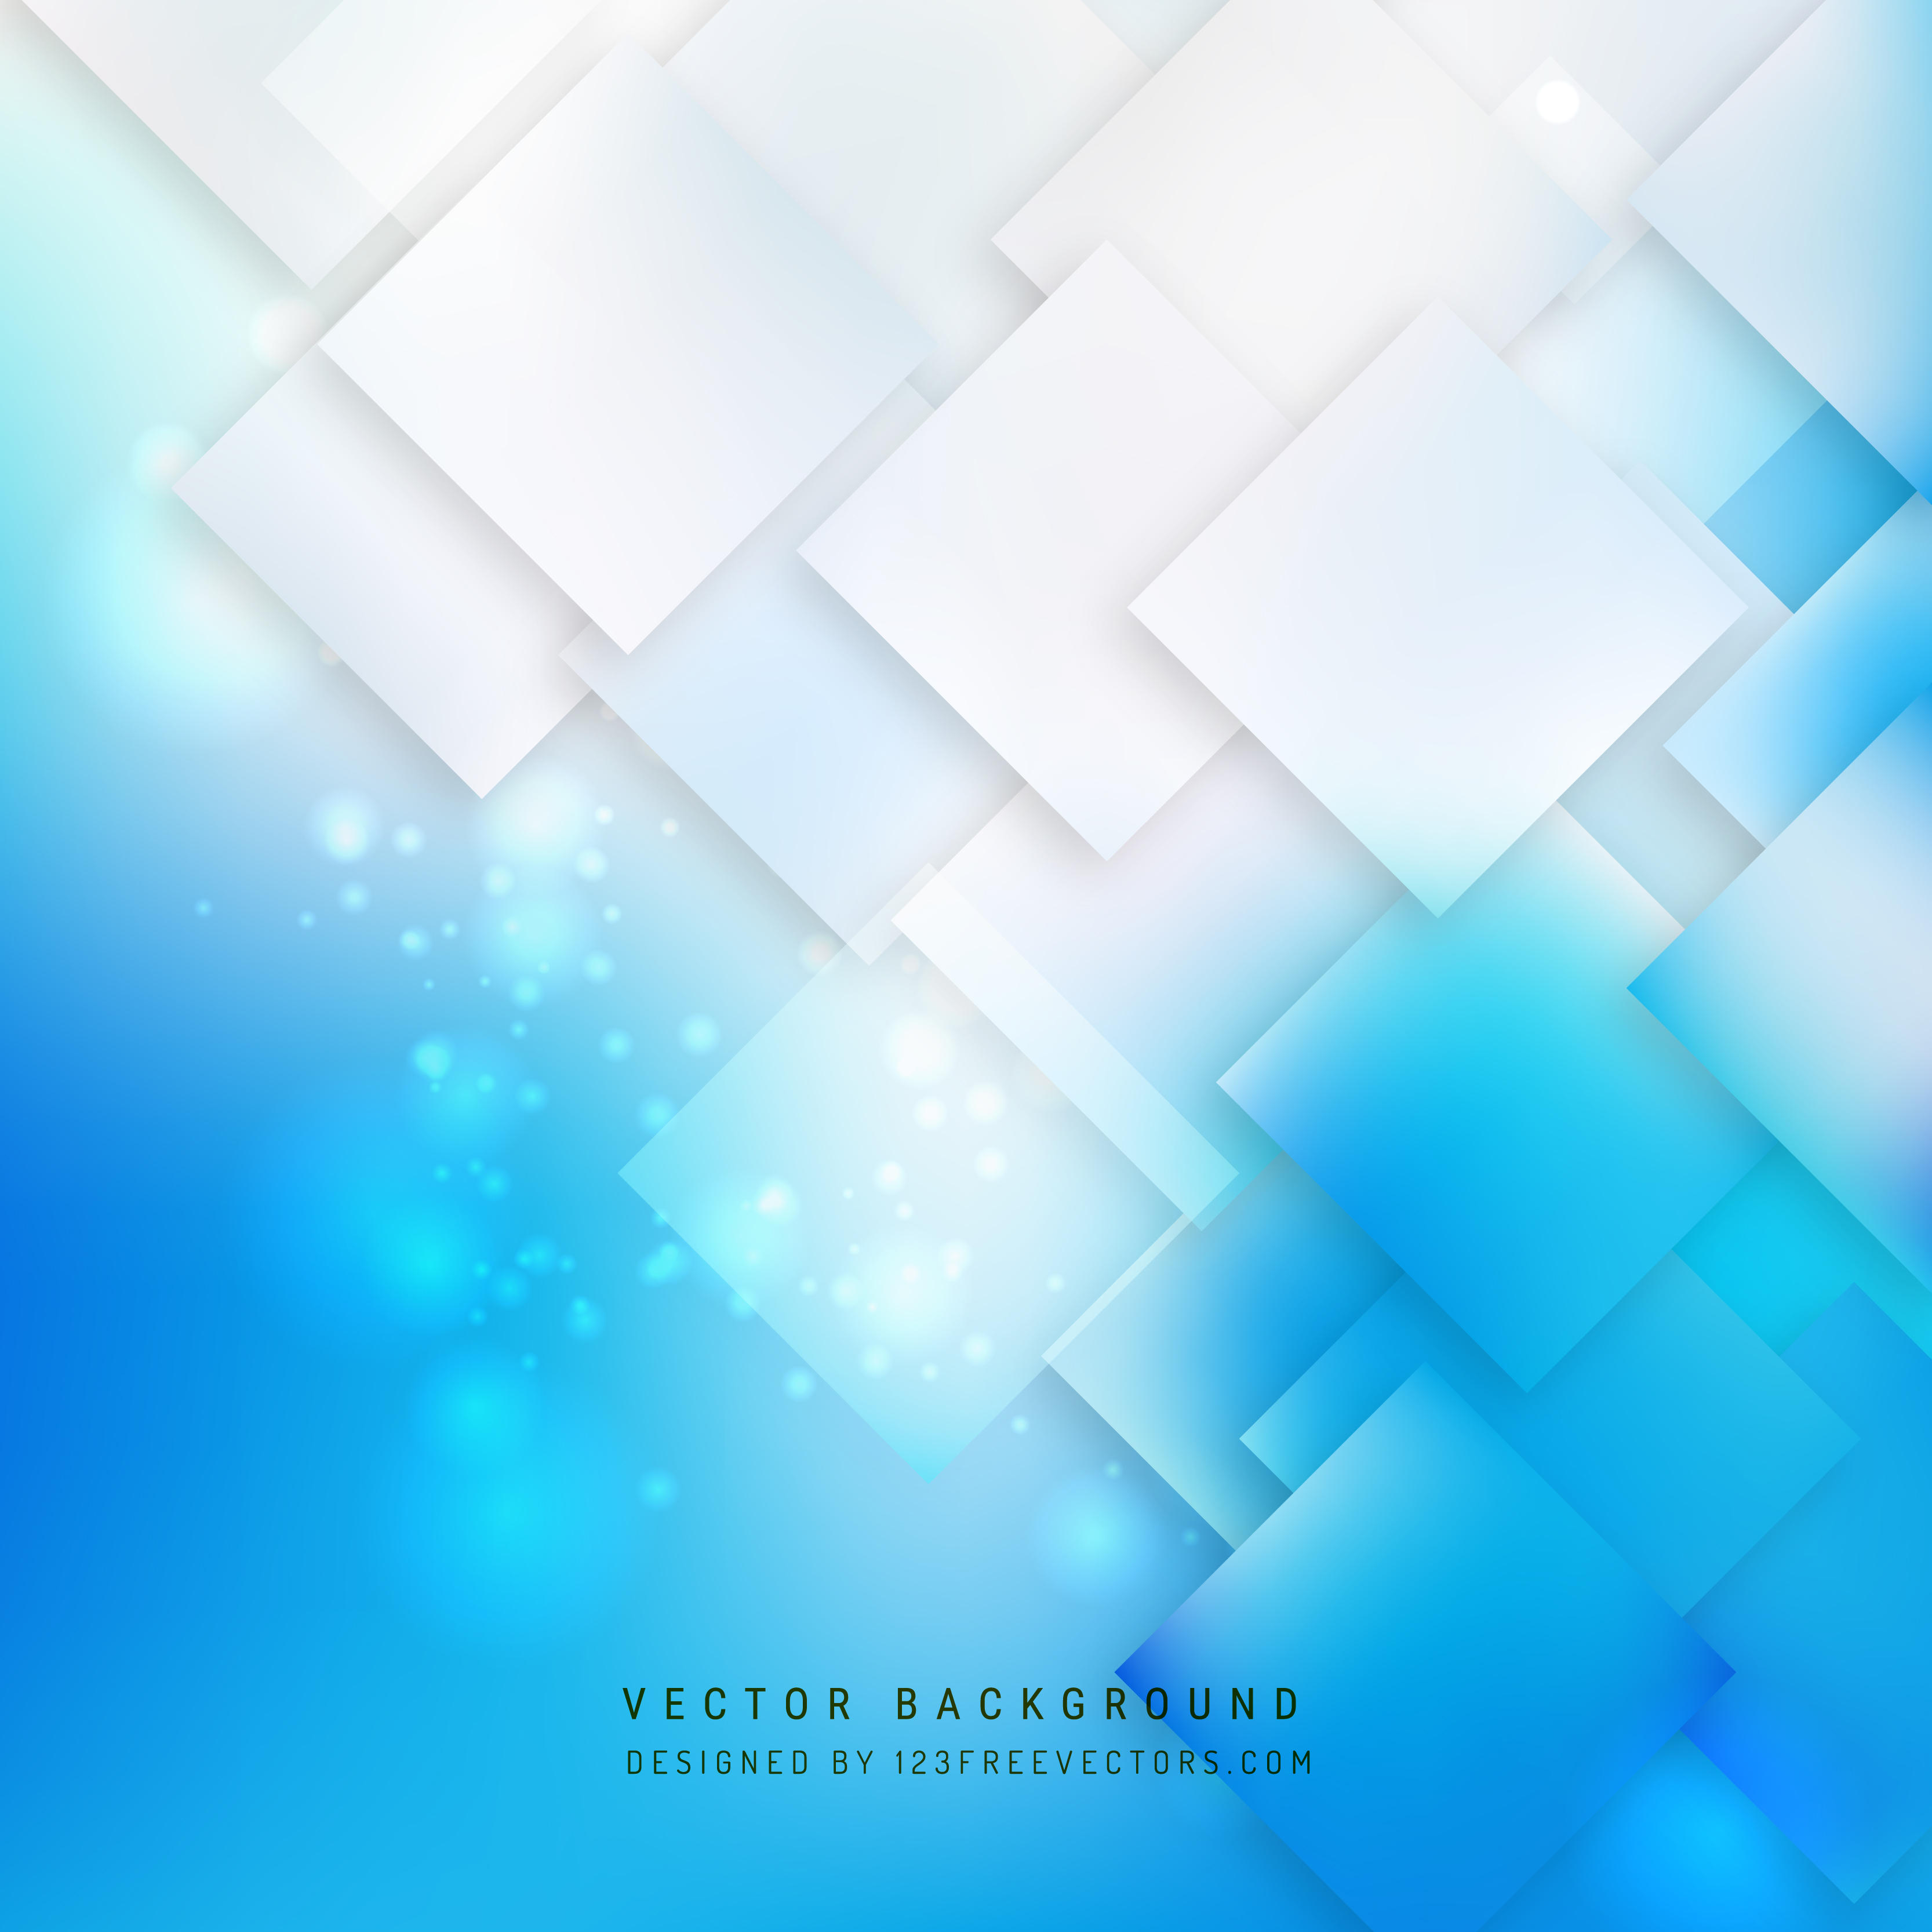 3333x3333 Abstract Blue White Geometric Square Background 123freevectors